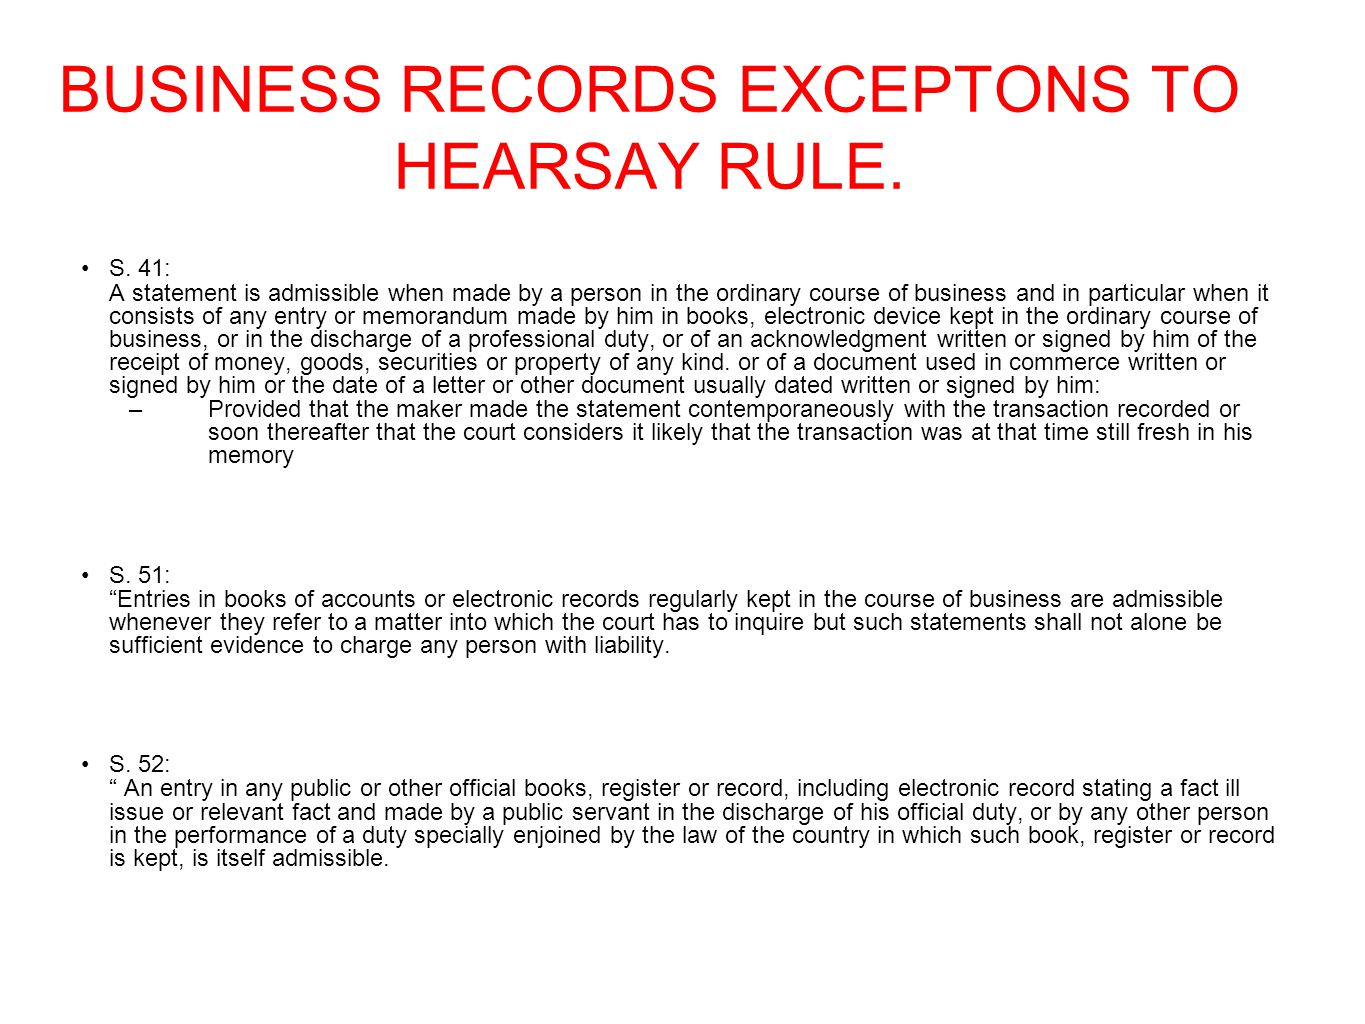 BUSINESS RECORDS EXCEPTONS TO HEARSAY RULE.